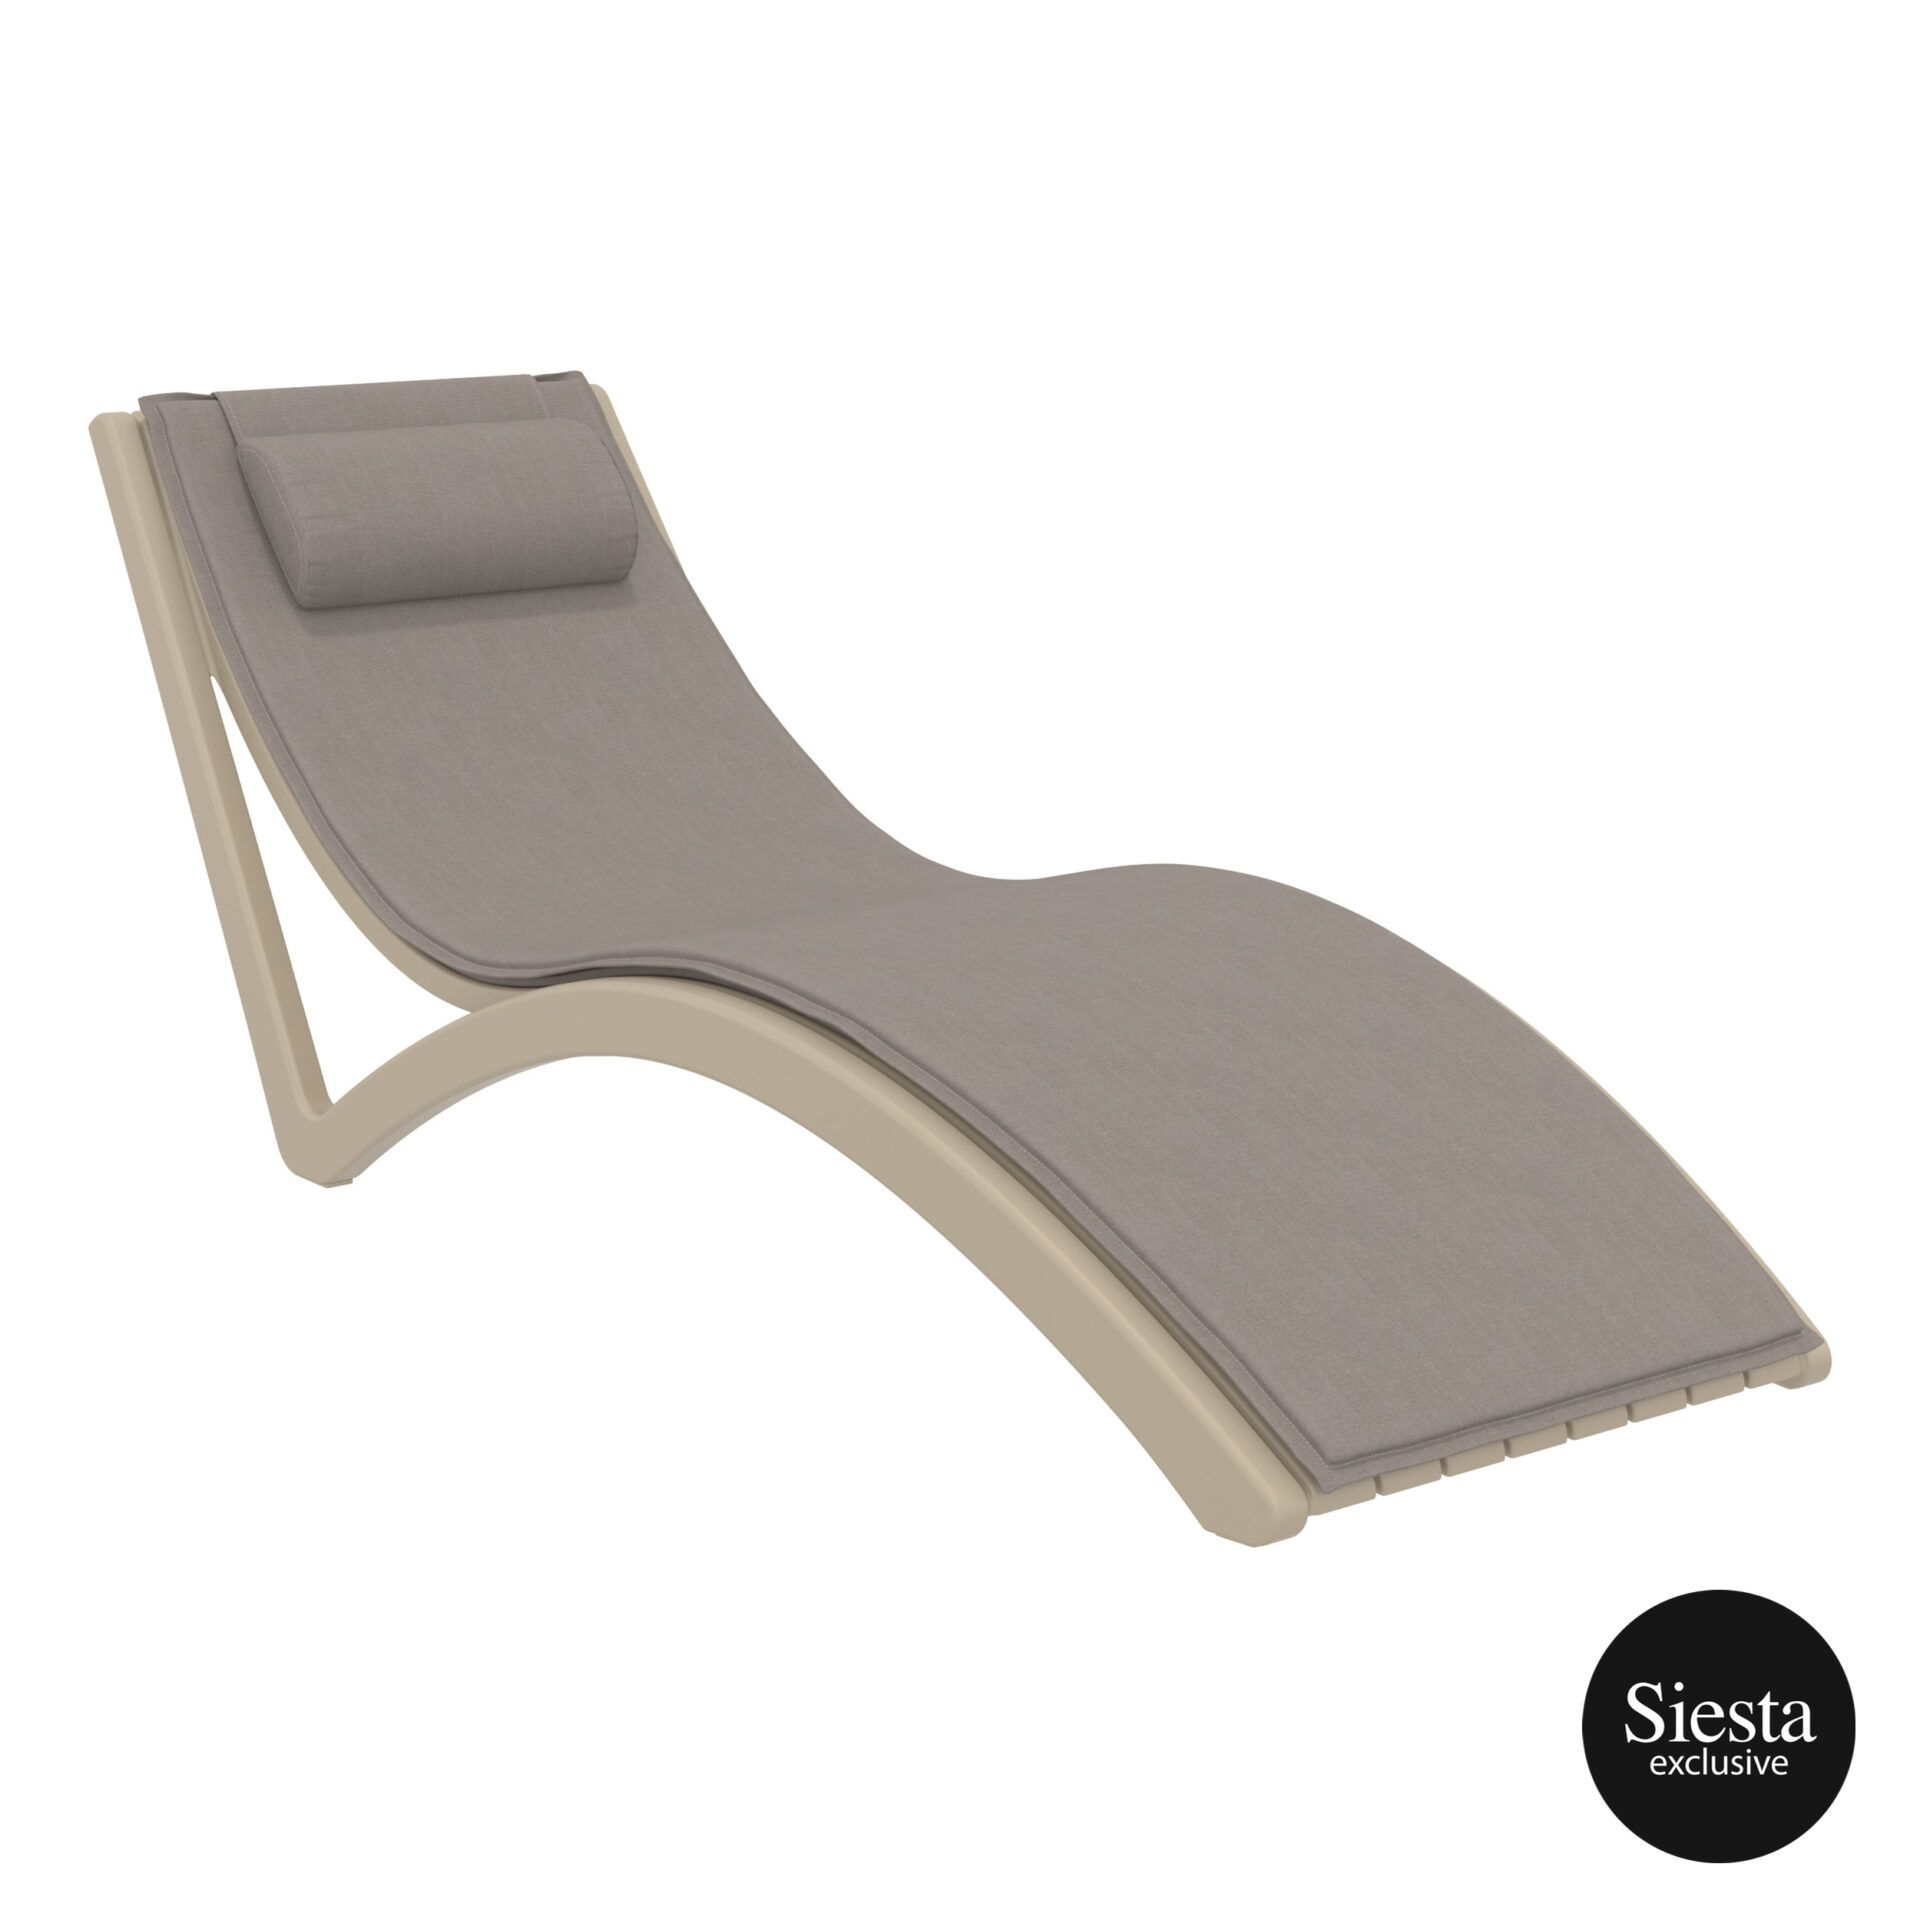 outdoor polypropylene slim sunlounger pillow cushion taupe brown front side